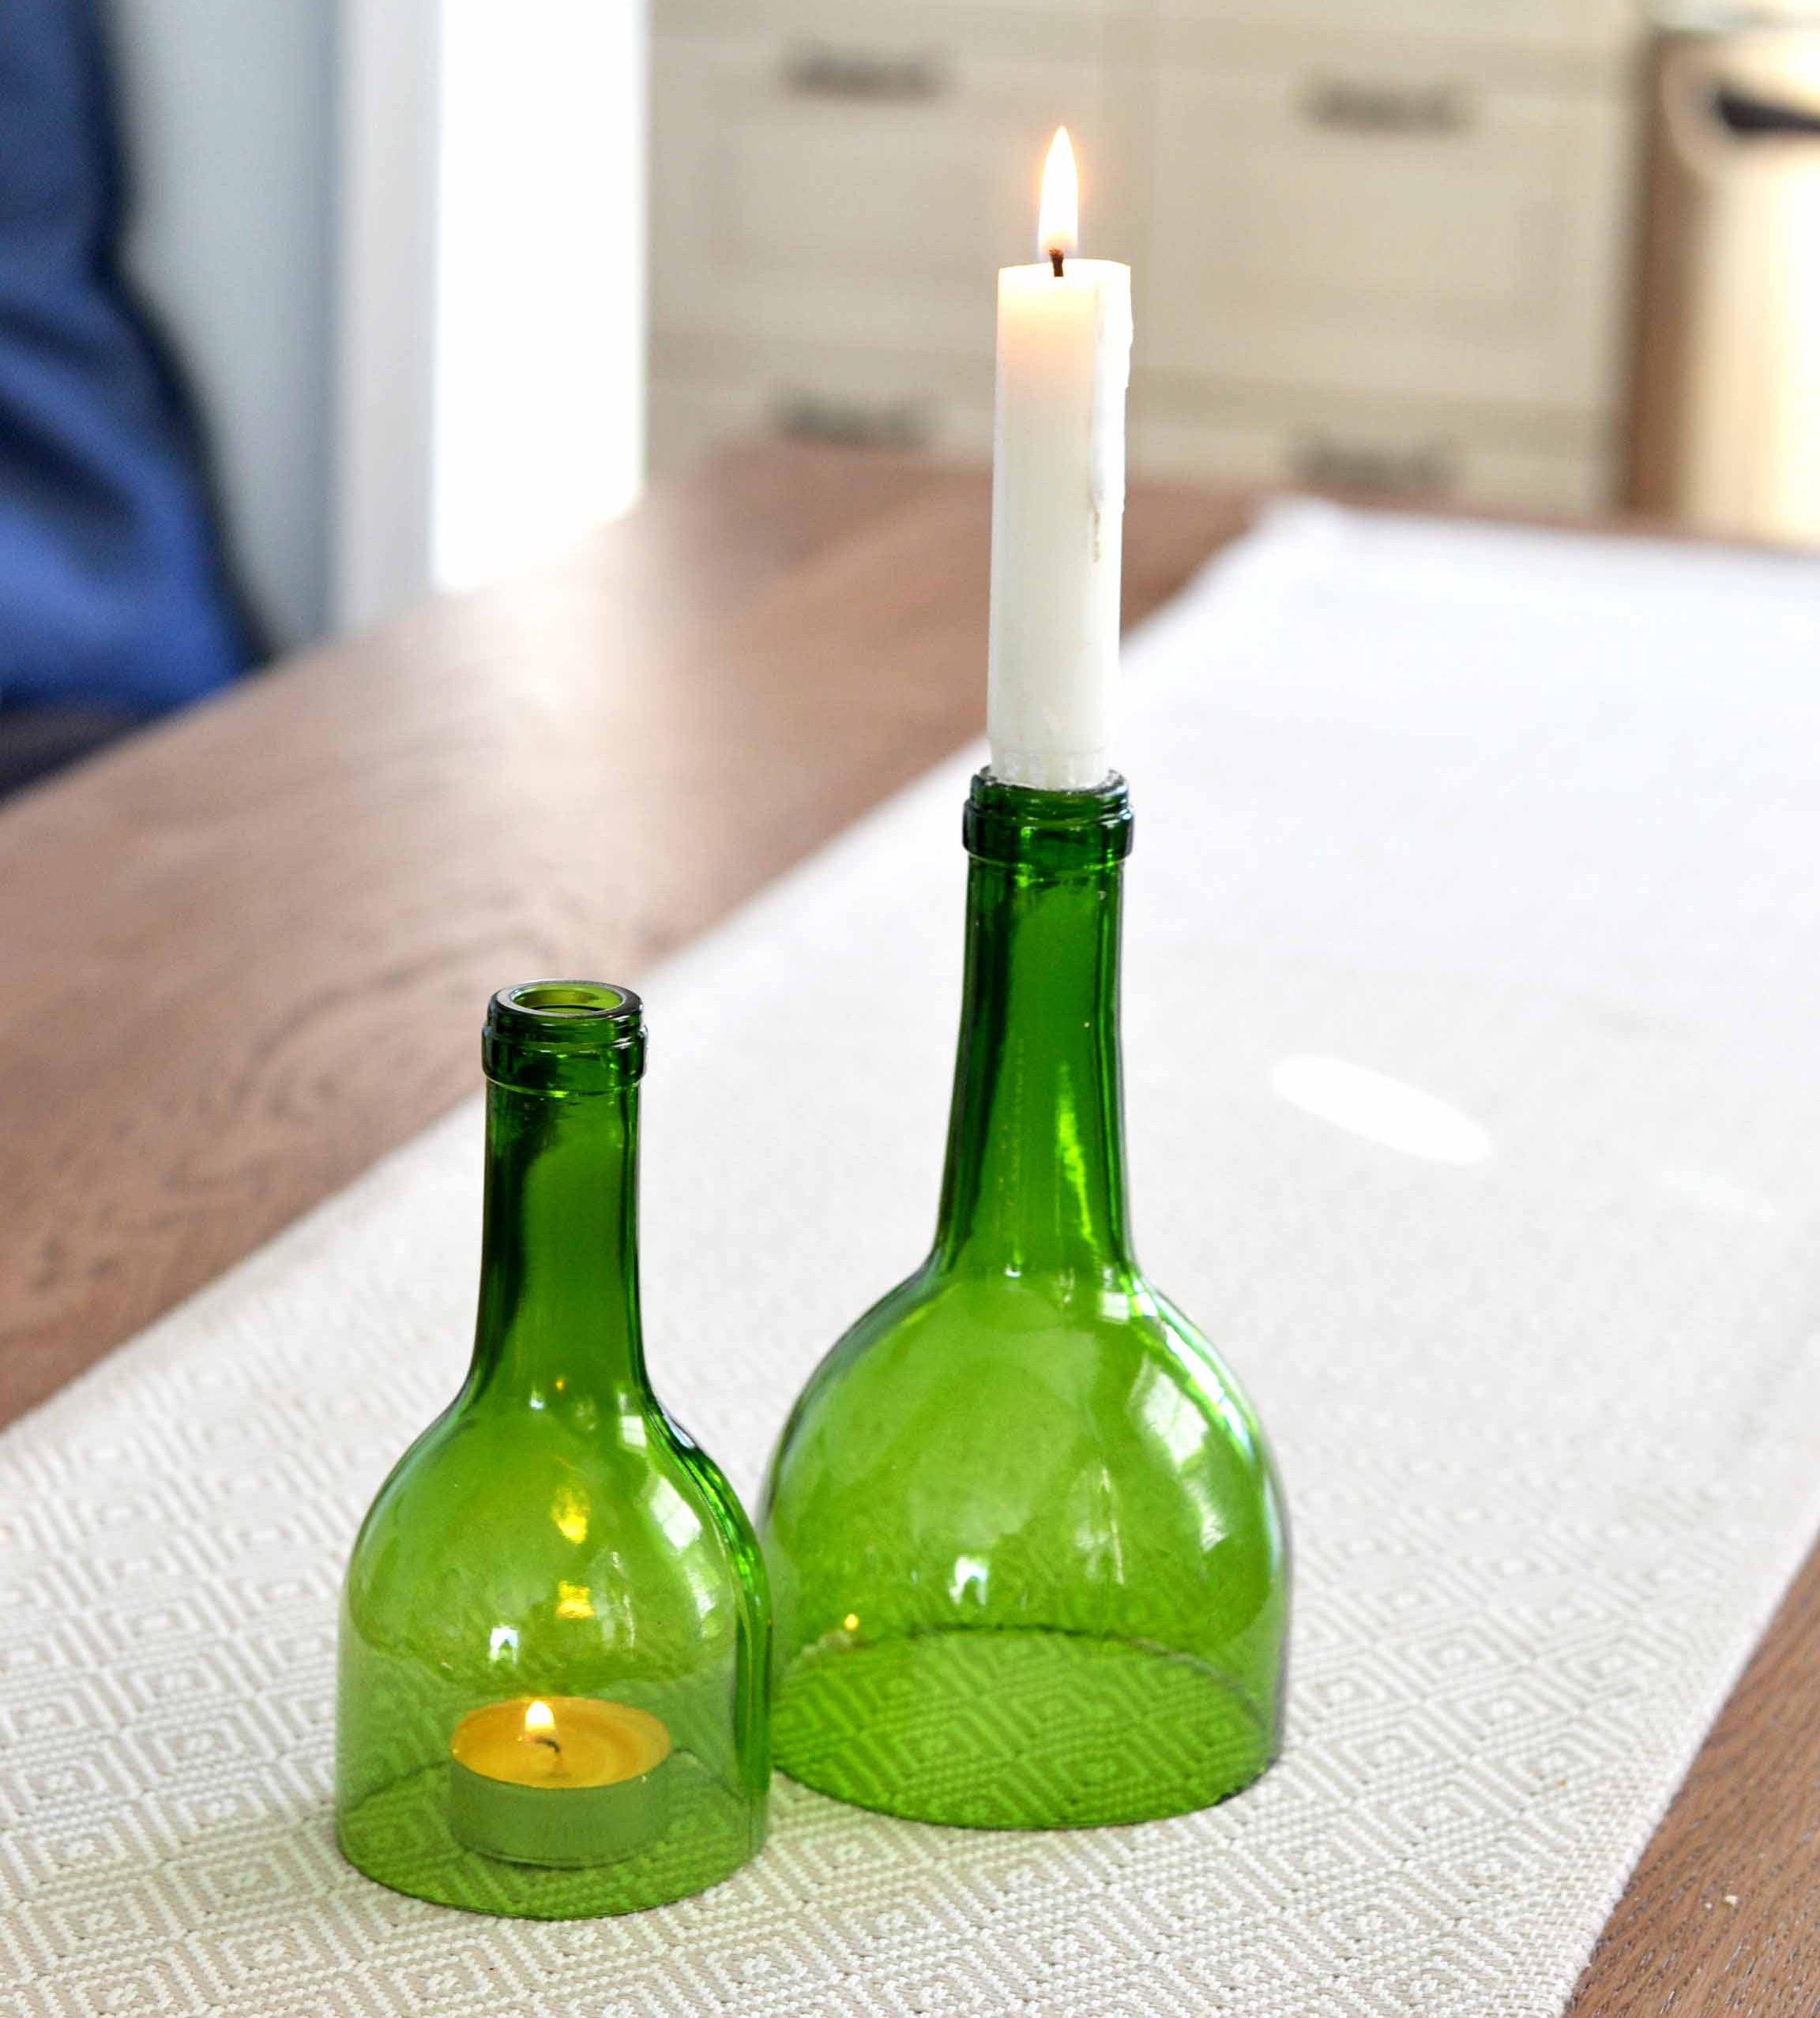 DIY #2 - Candle sticksThe second diy is also candle related and is an idea of what to do with the tops of your bottles. It could also be a great gift or just a cool way to dress up your dining table.Simply sand and clean off bottle tops and pop in some candles.